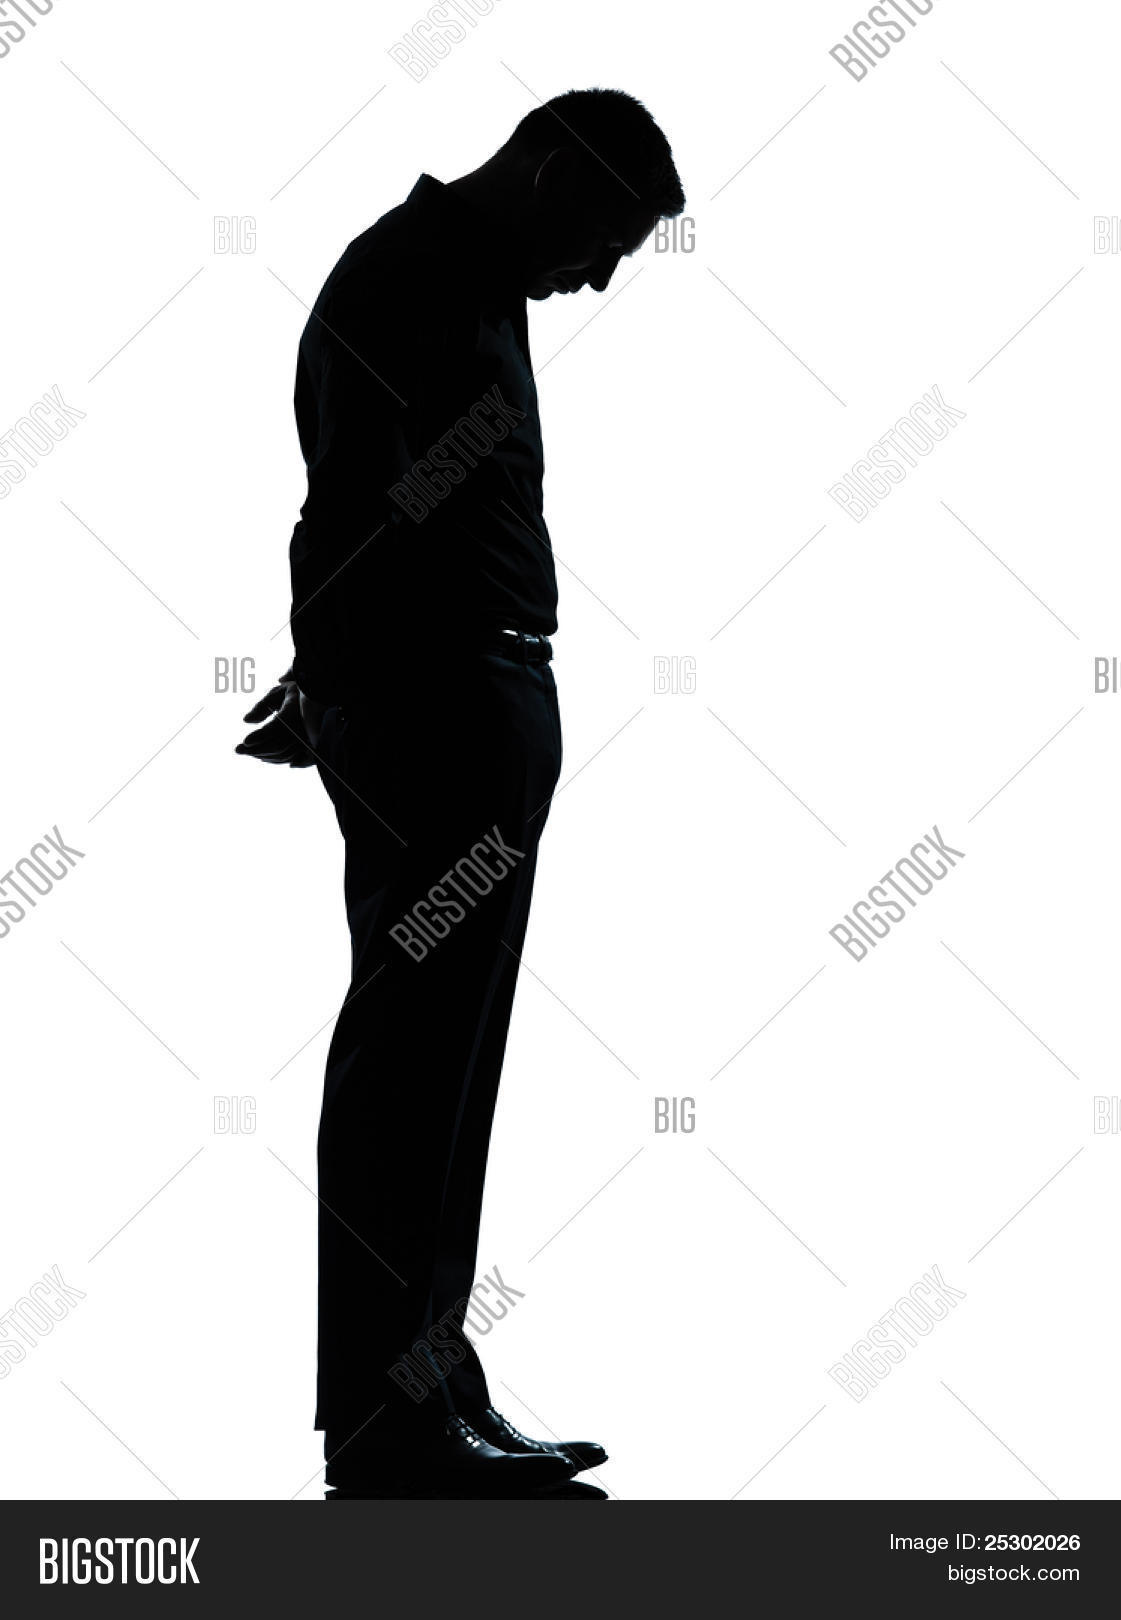 1121x1620 One Caucasian Business Man Sad Lonely Silhouette Image